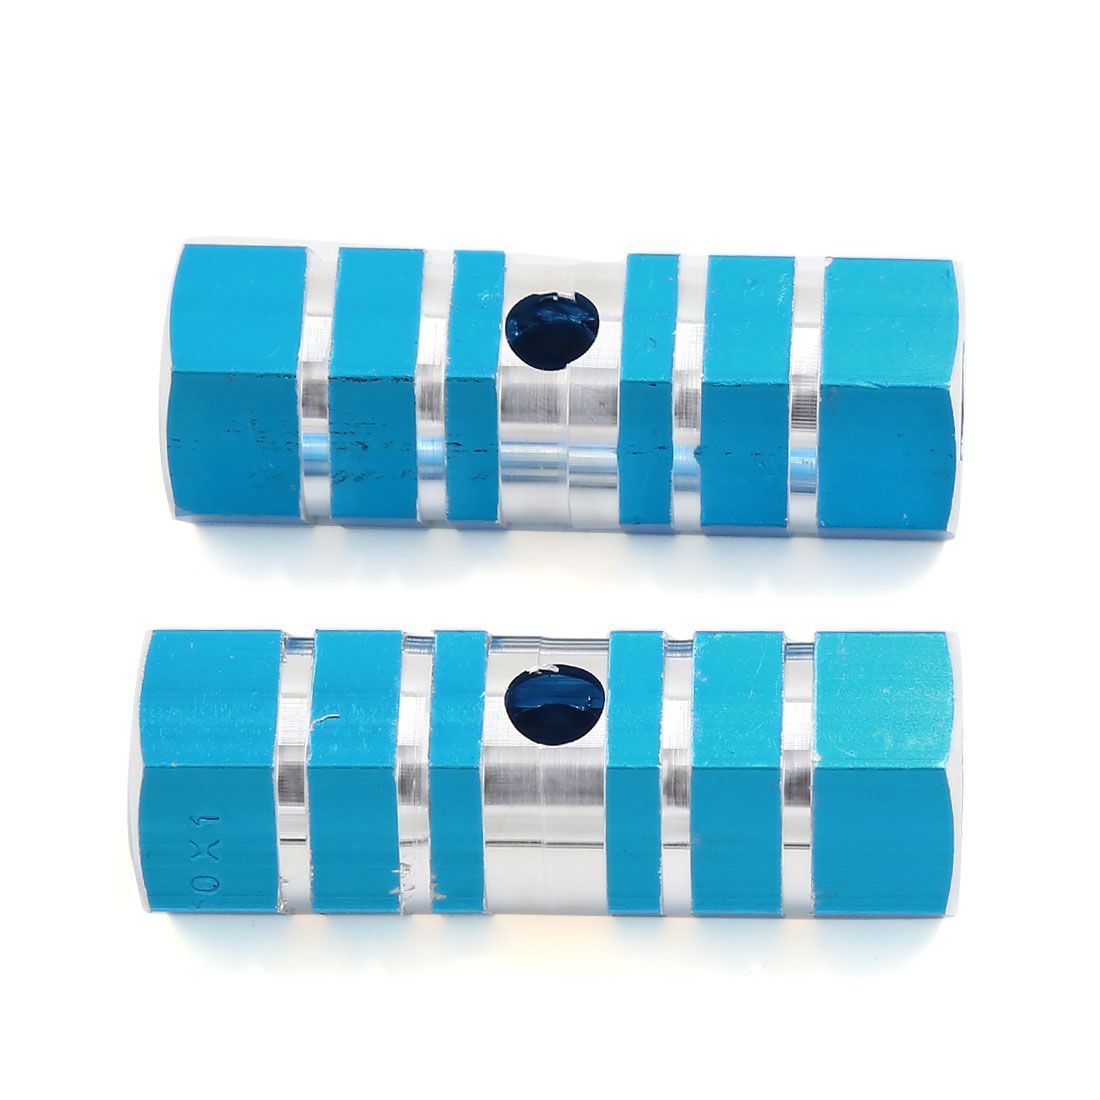 9mm Thread Diameter Blue Aluminum Antislip Axle BMX Bicycle Foot Pegs 2 Pcs